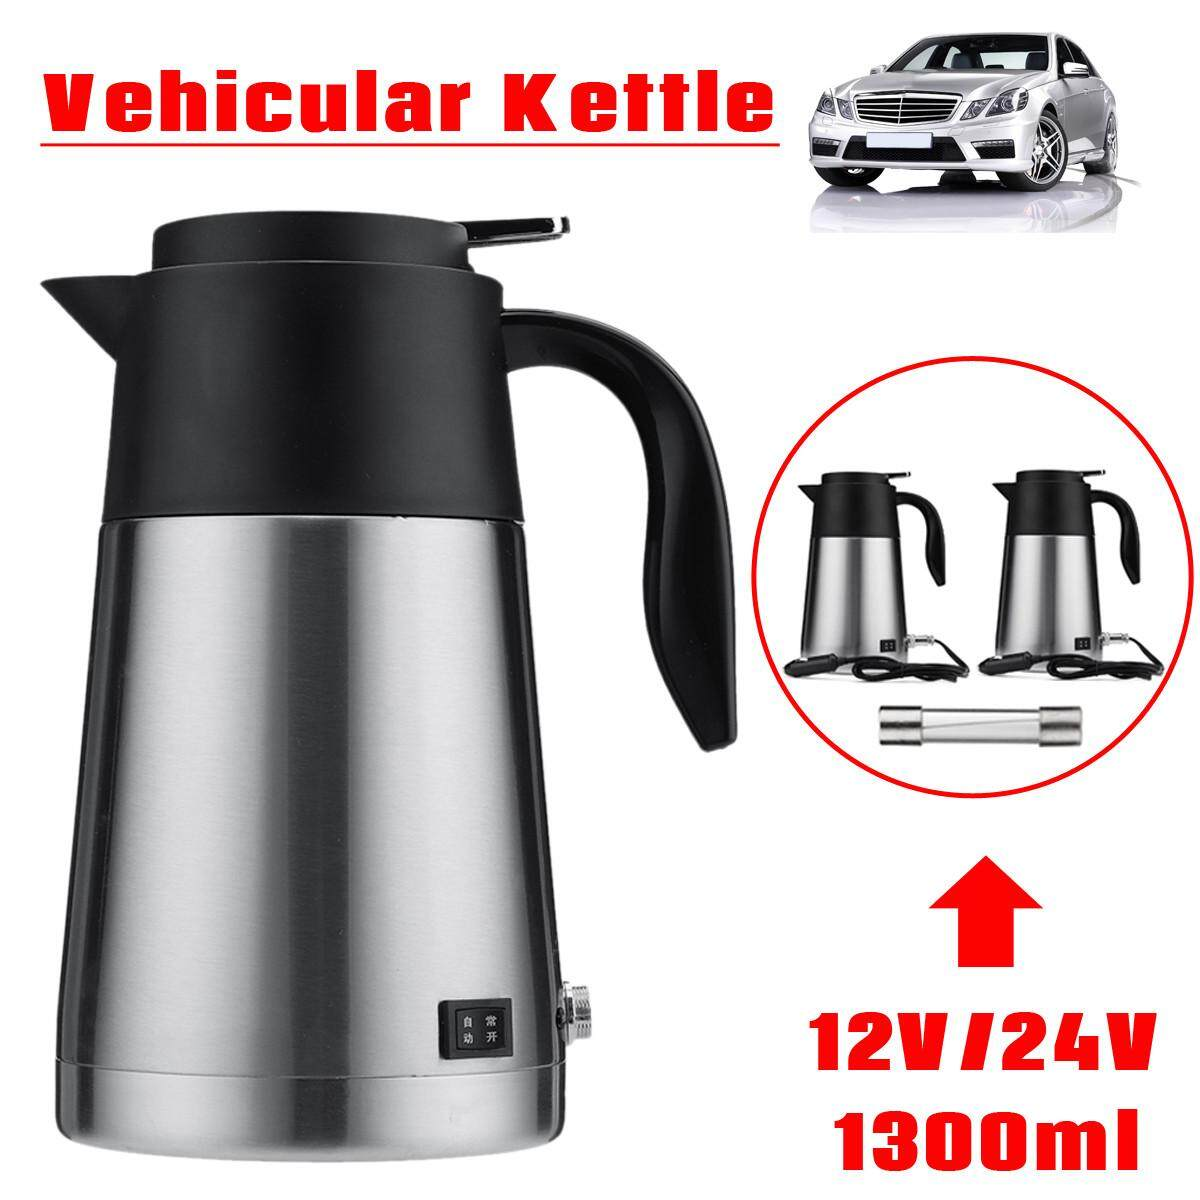 1300ml 24V Electric In-Car Heating Kettle Stainless Steel Water Cup Travel Silver